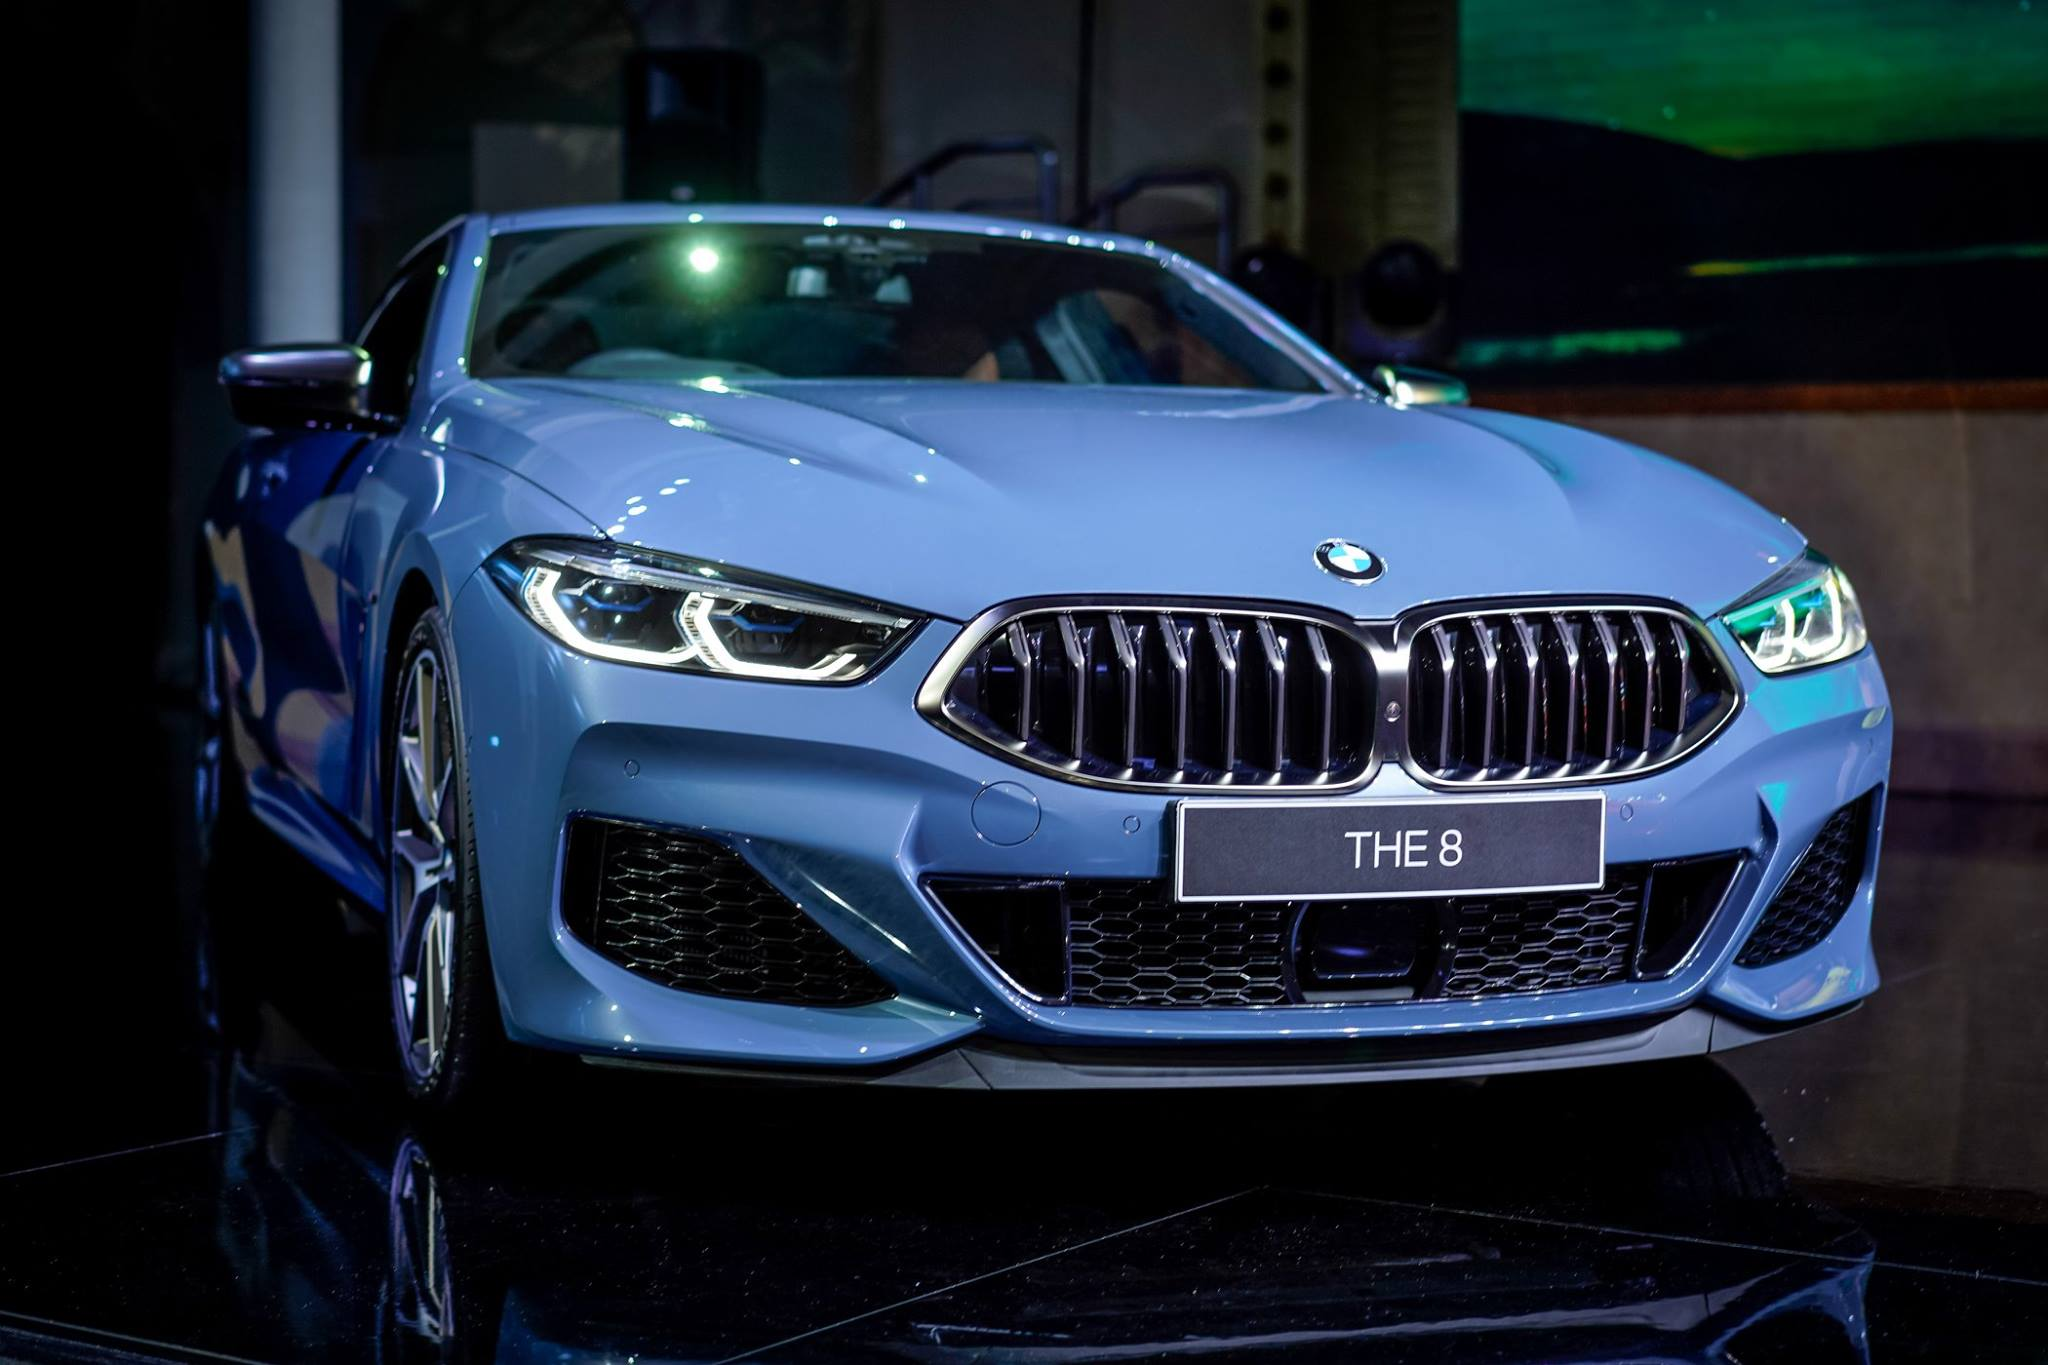 BMW Introduces the 8 Series in Malaysia with the Debut of